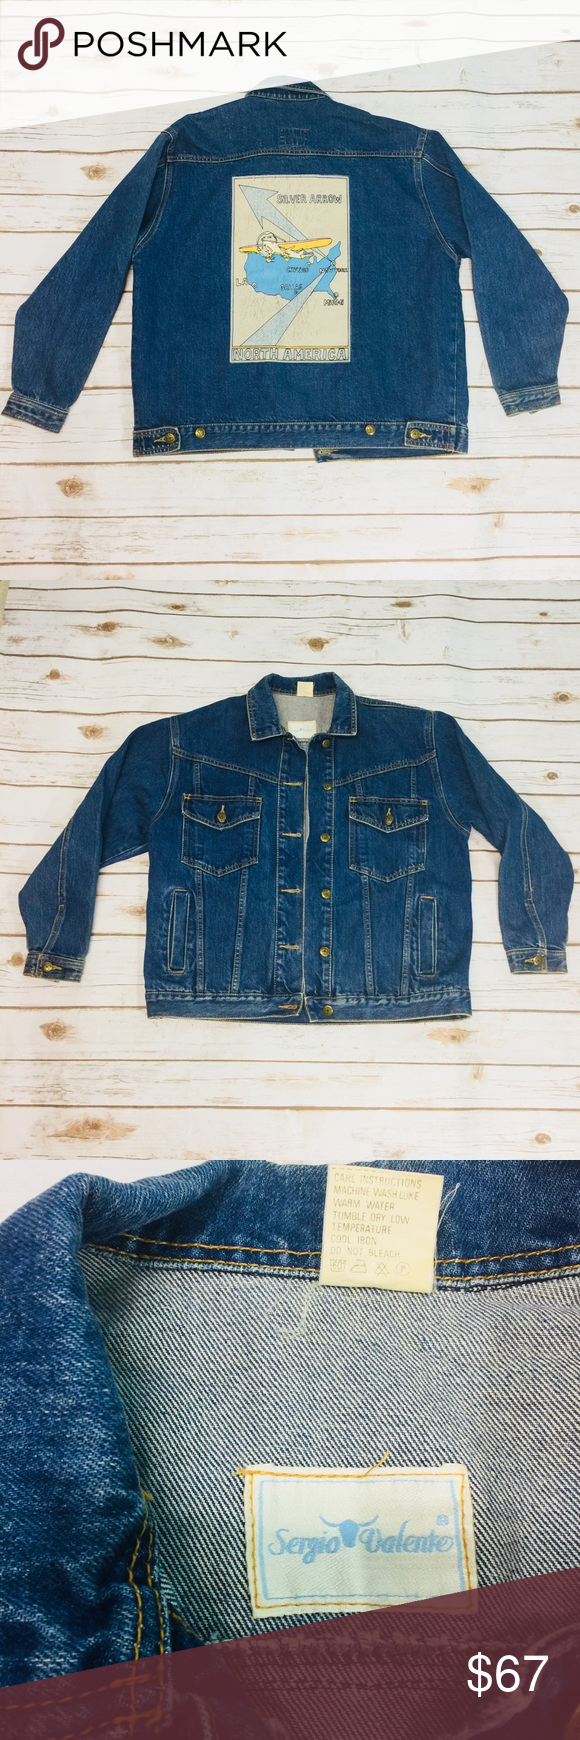 69daa06eb7 VINTAGE 80 s Men s Jean Jacket Sergio Valente Very cool vintage men s jean  jacket from the 1980 s. Features a decal on the back. Size medium. In very  good ...